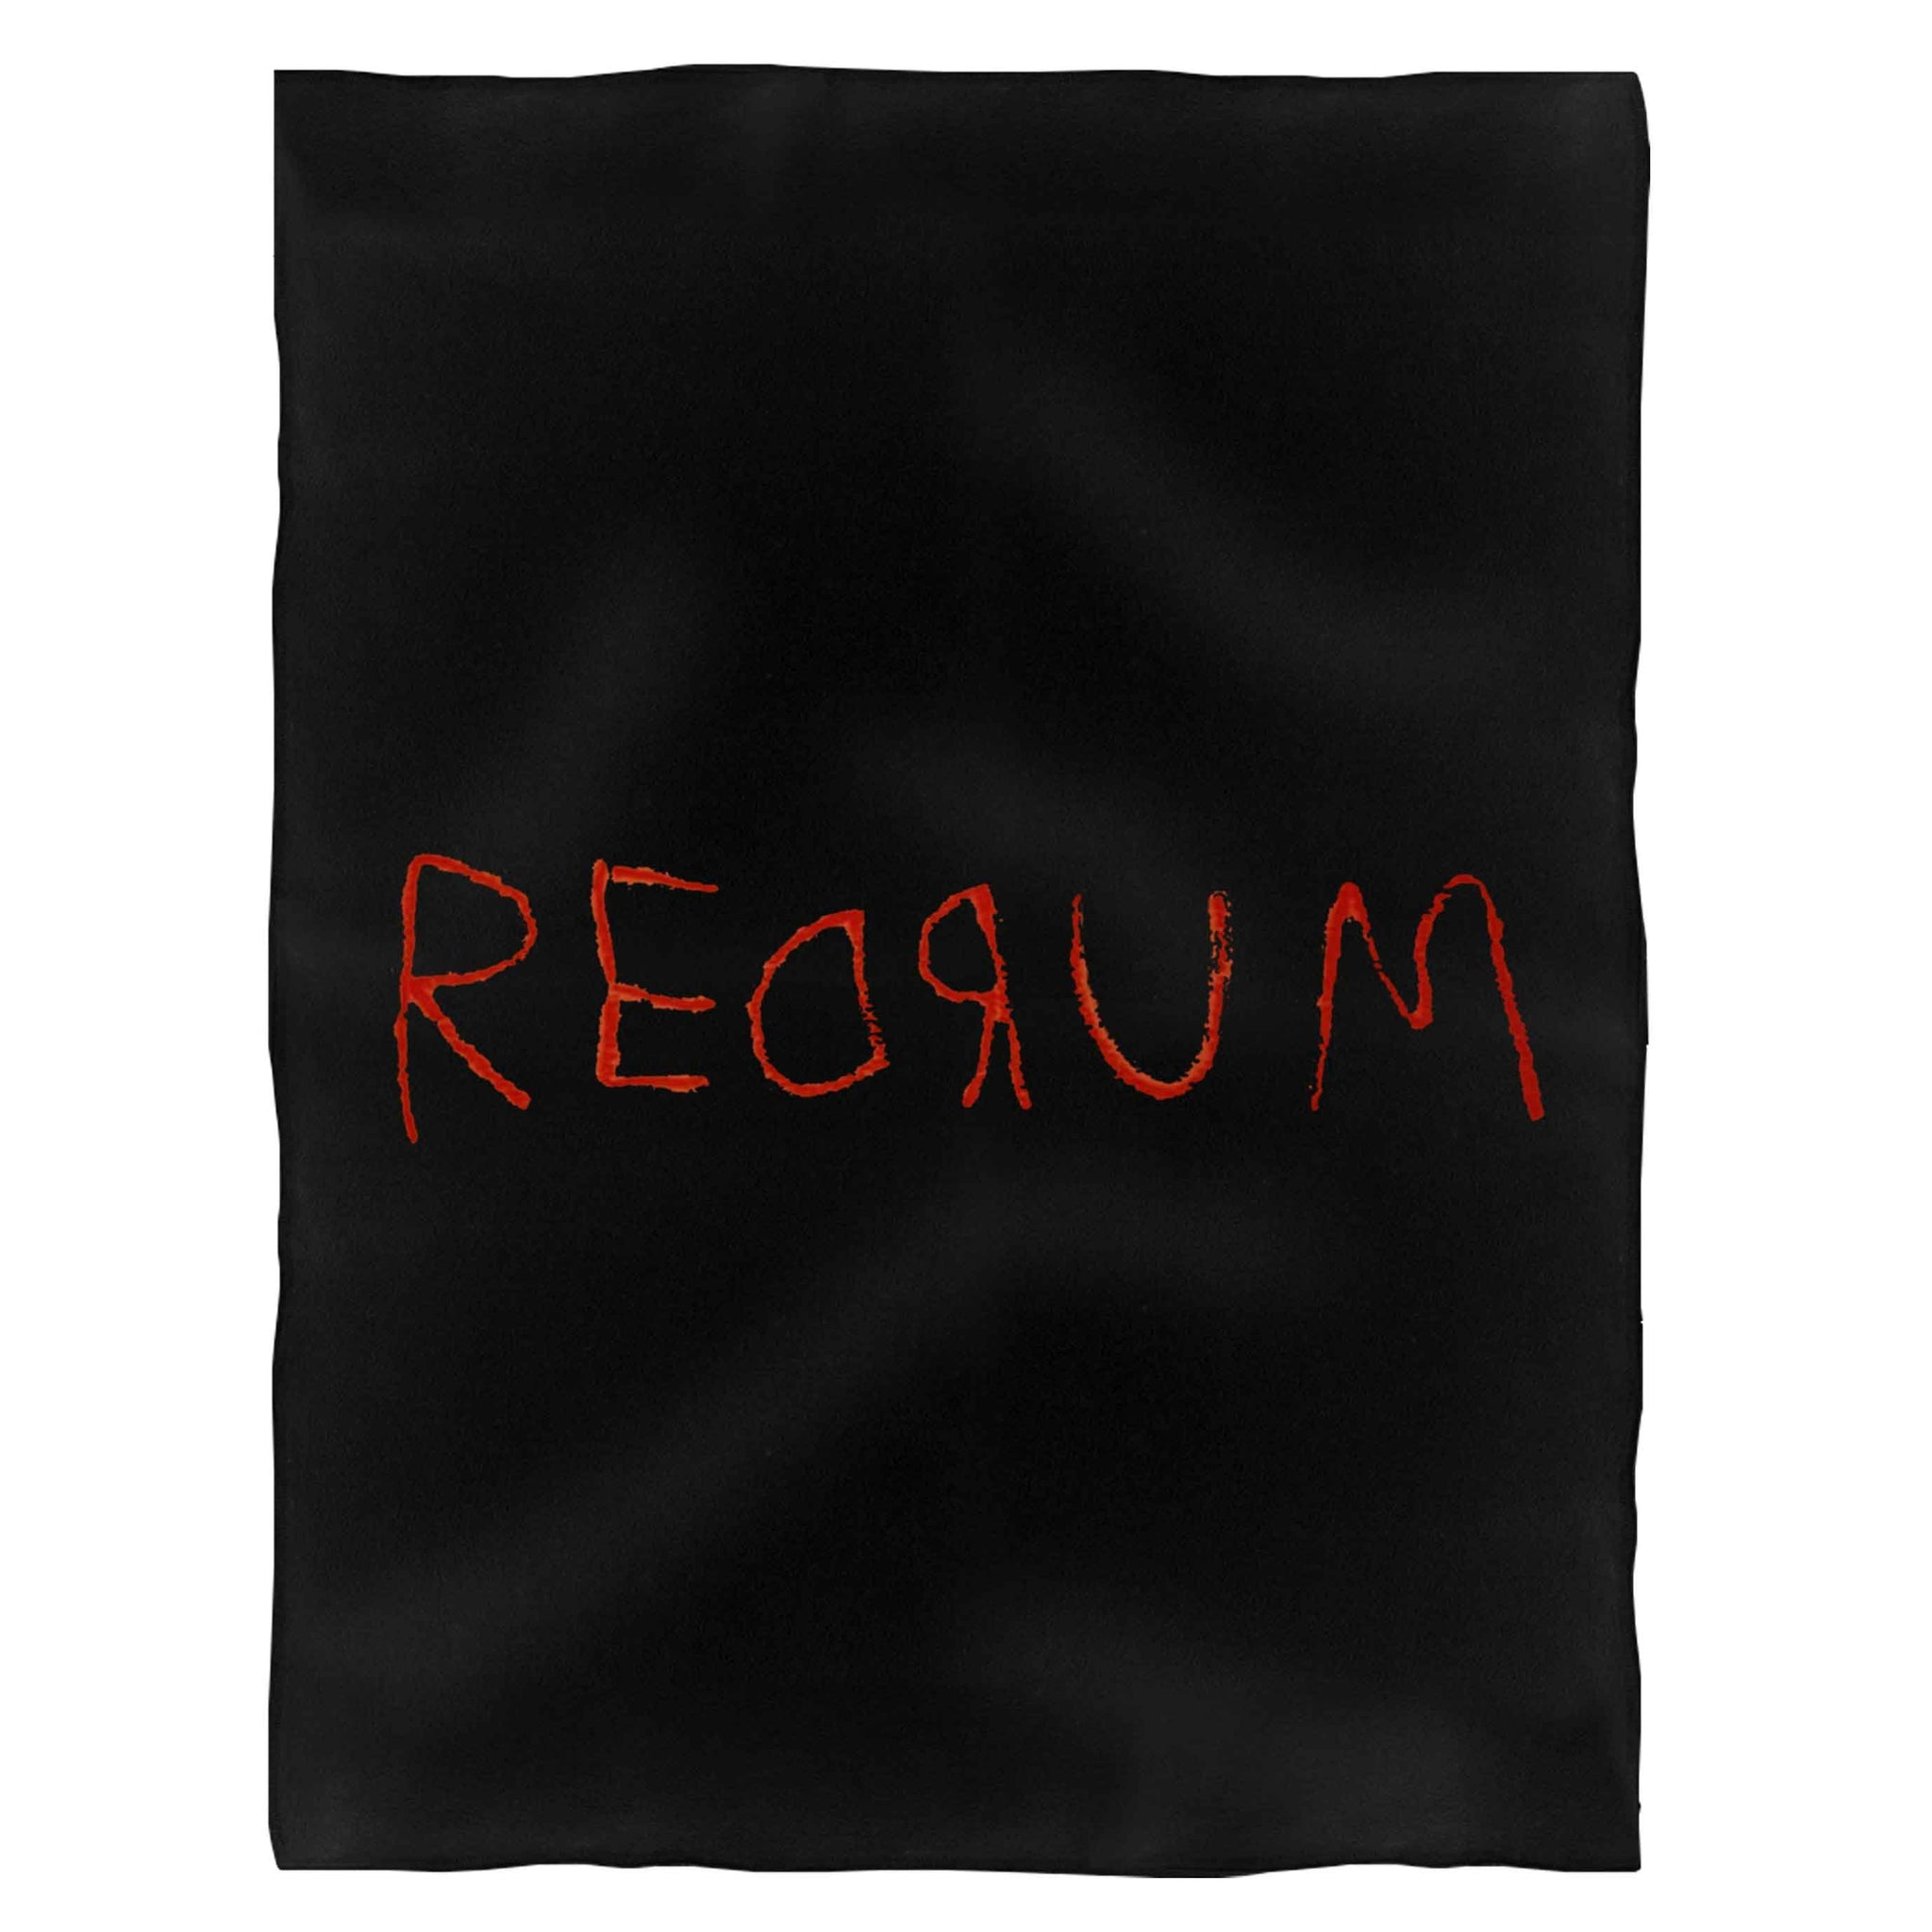 The Shining Redrum Fleece Blanket